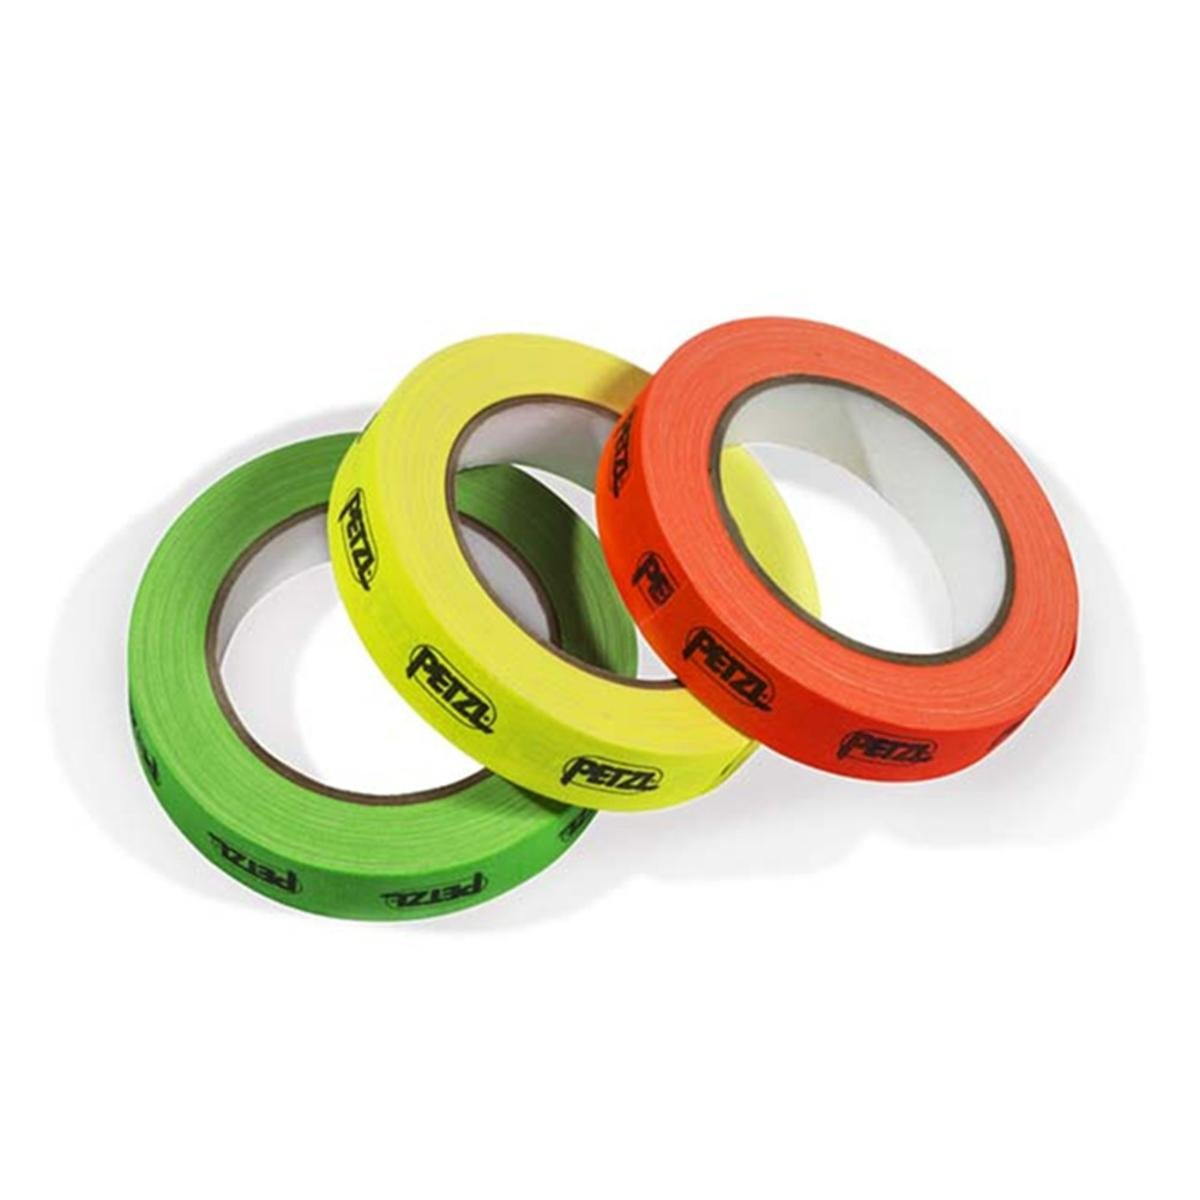 Petzl - LOGO route setting tape,orange